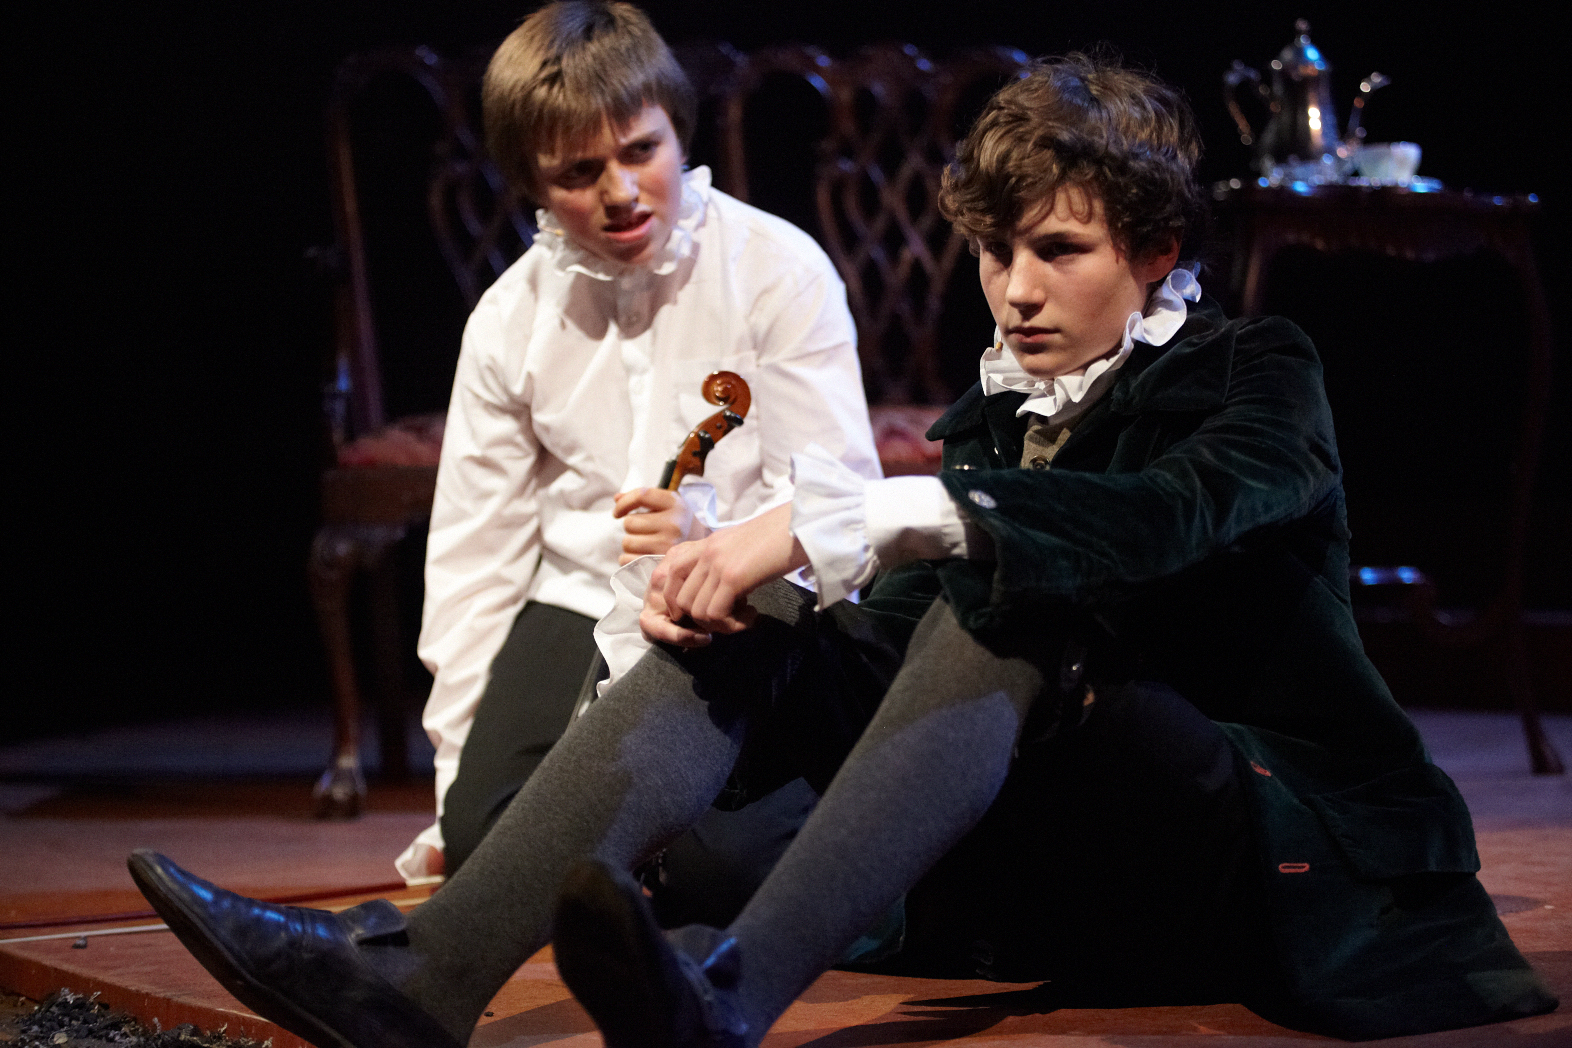 Max Macmillan (young Thomas) and George Clark (young Alexander)